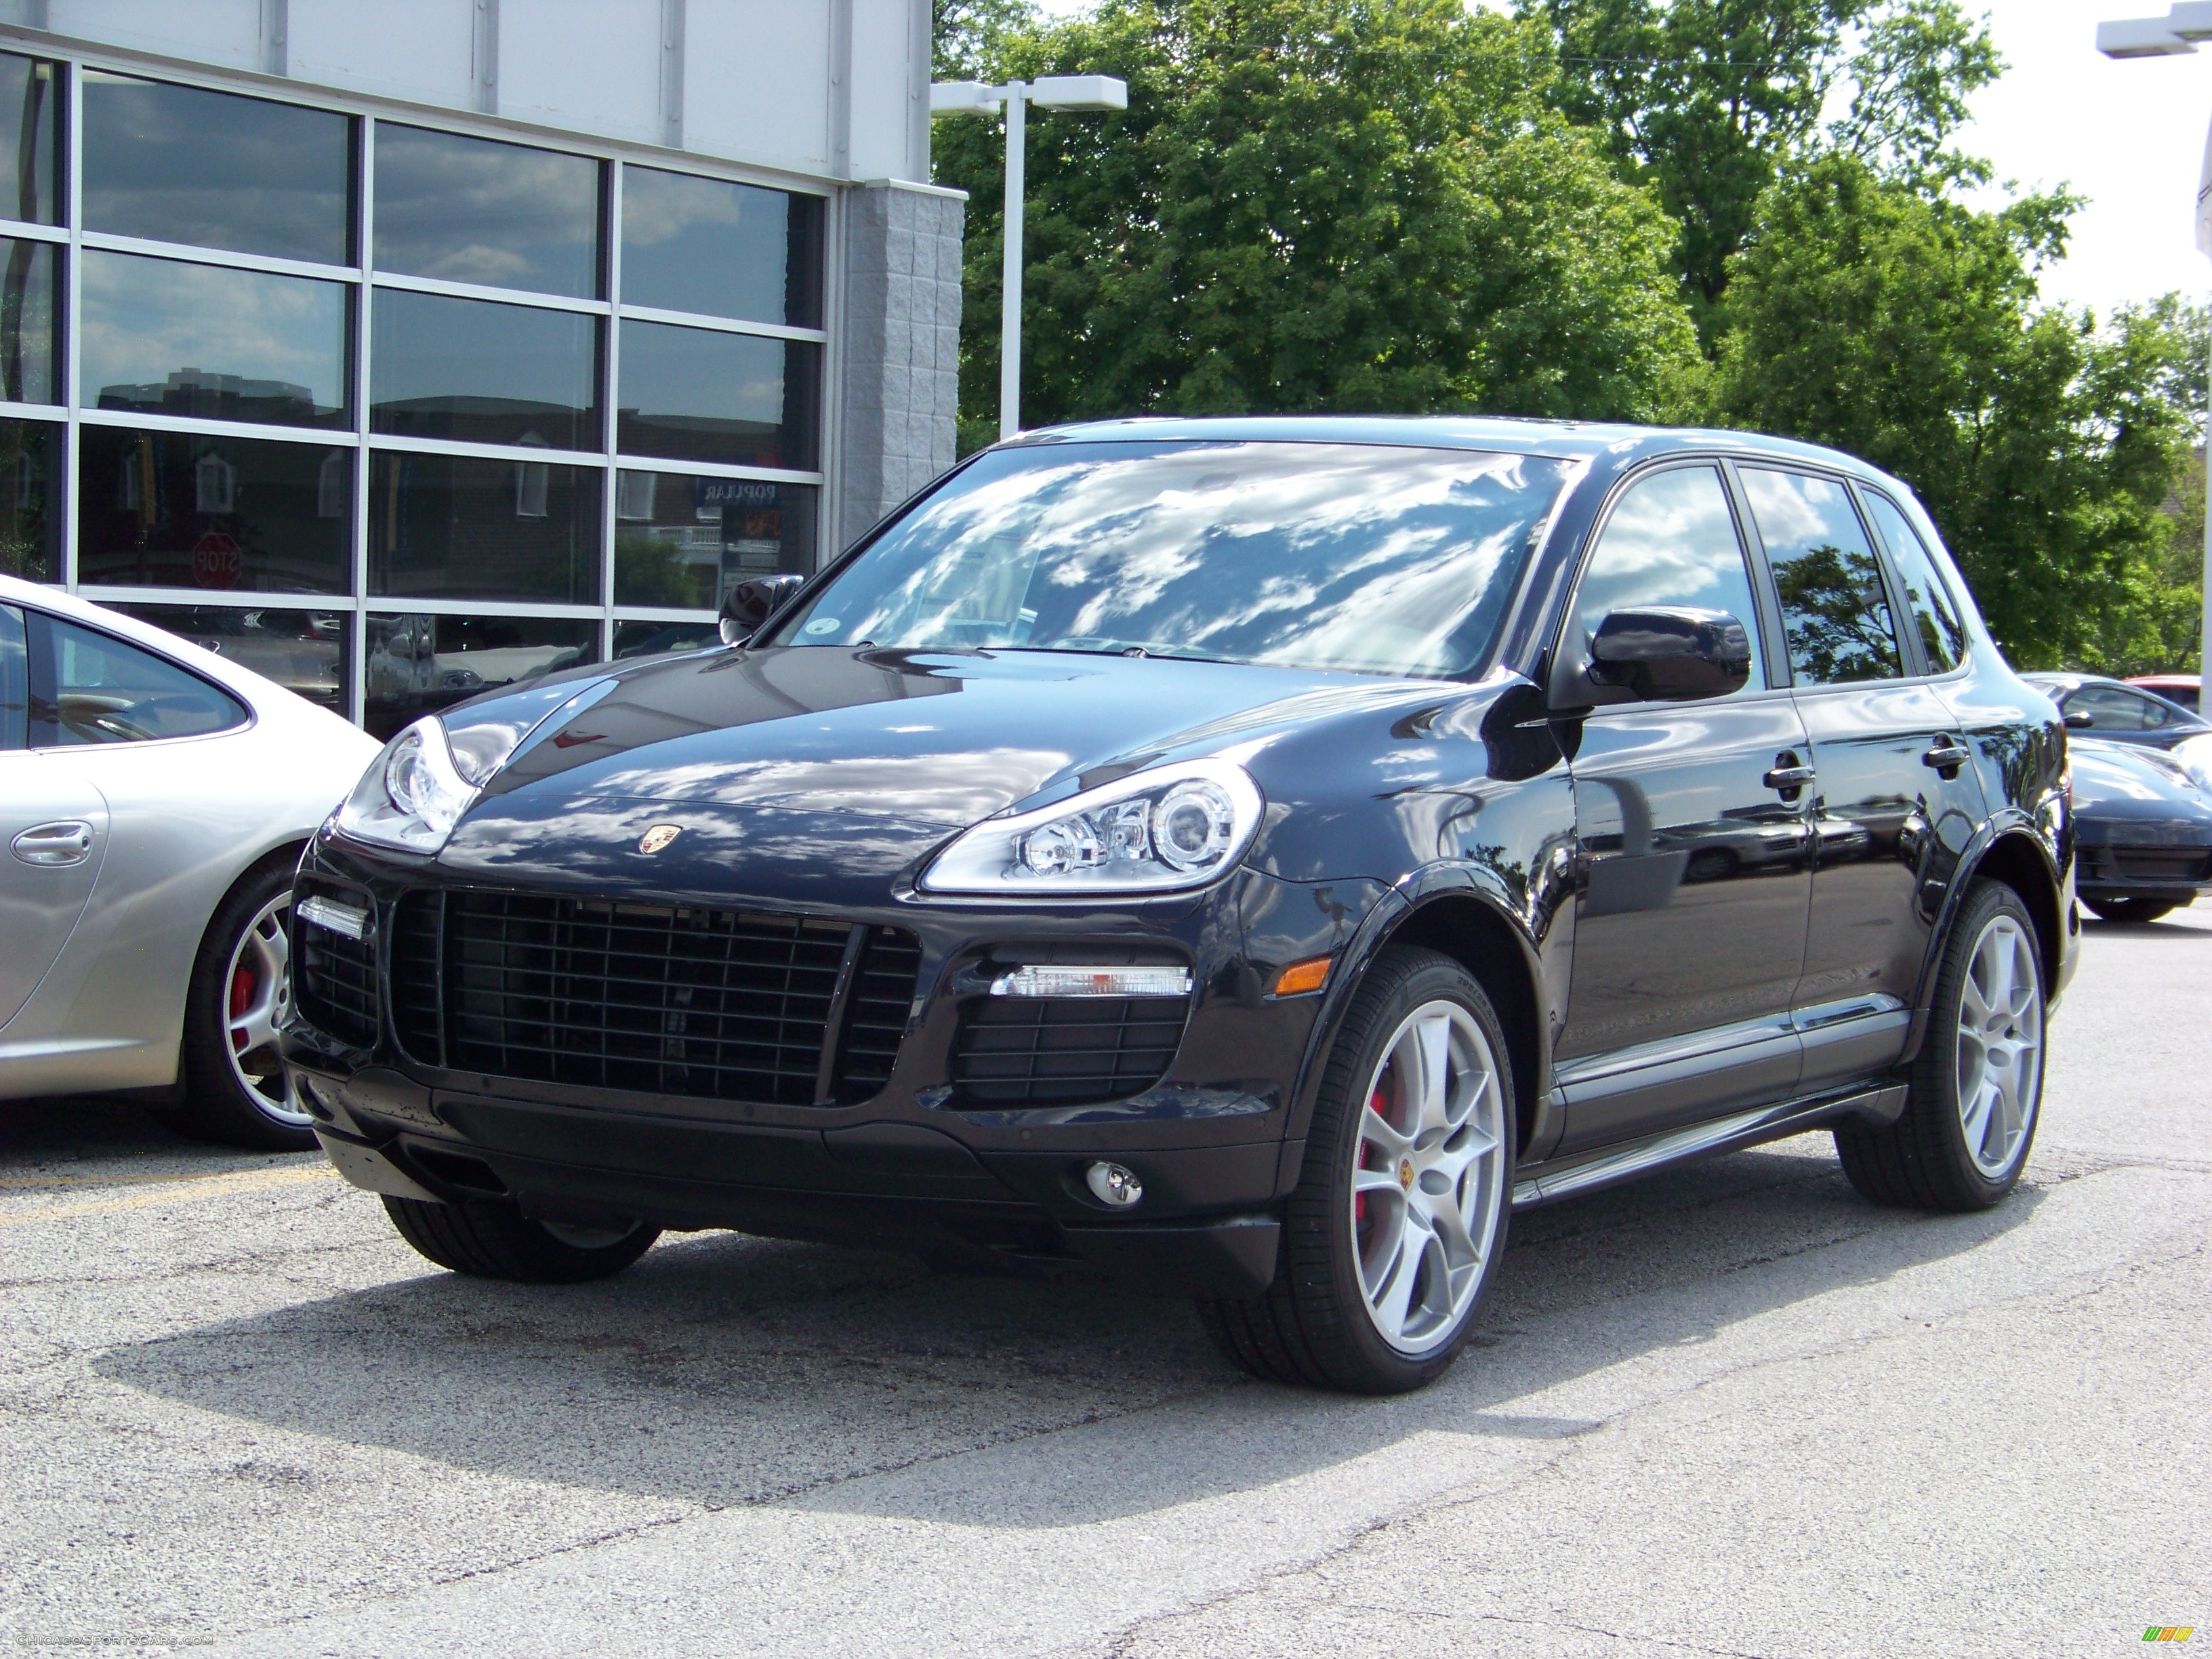 2008 Porsche Cayenne Gts In Black A74453